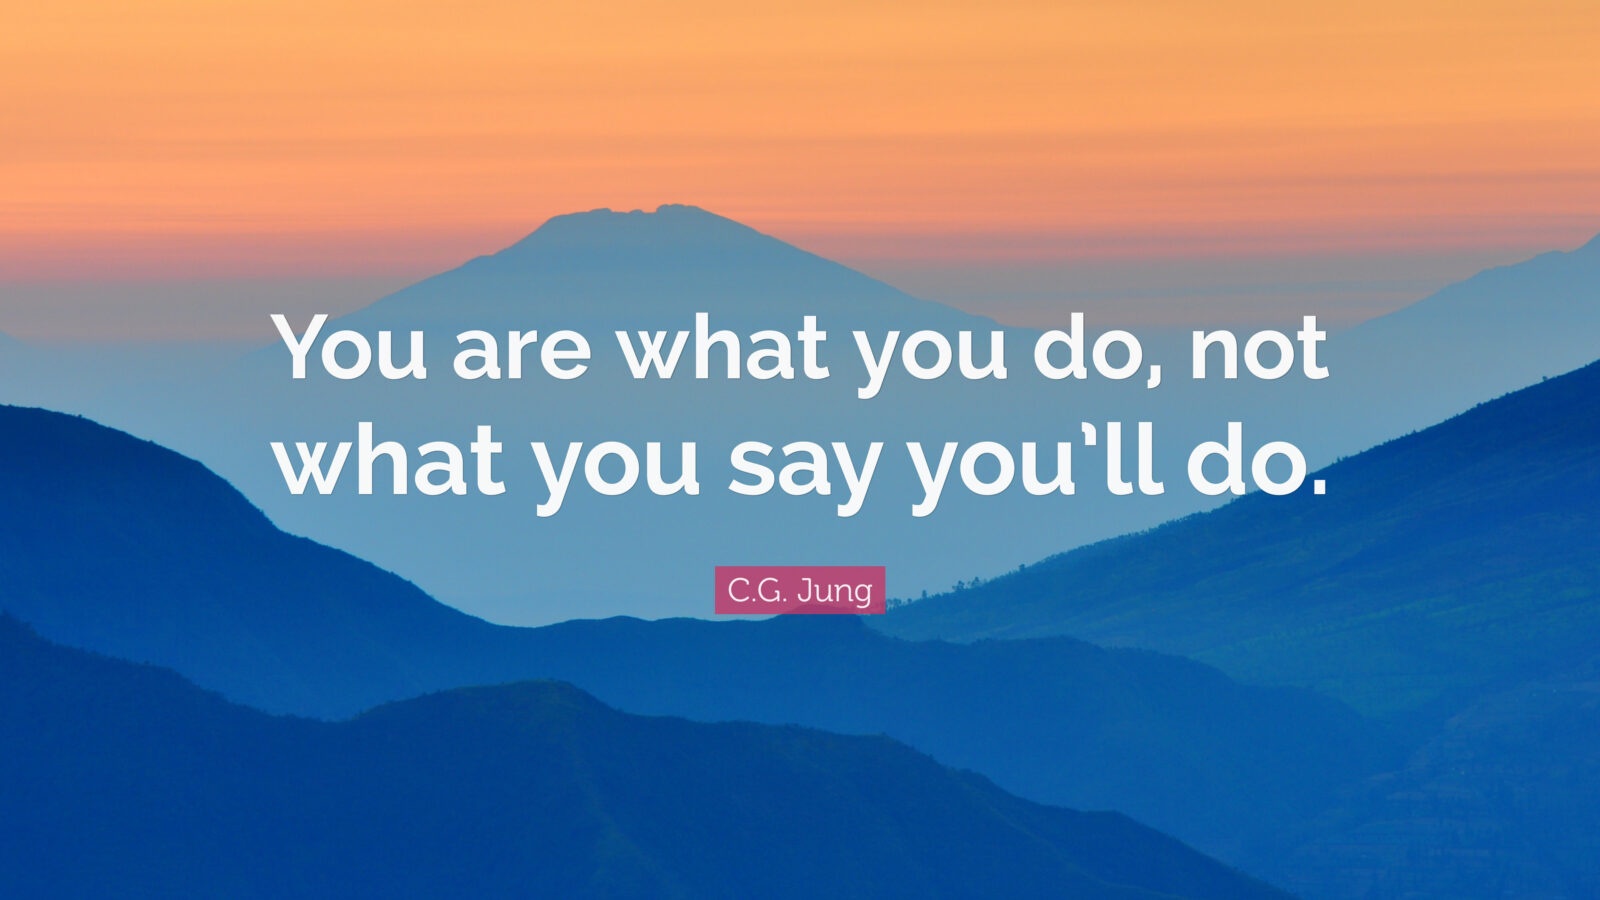 You are what you do. Carl Jung.